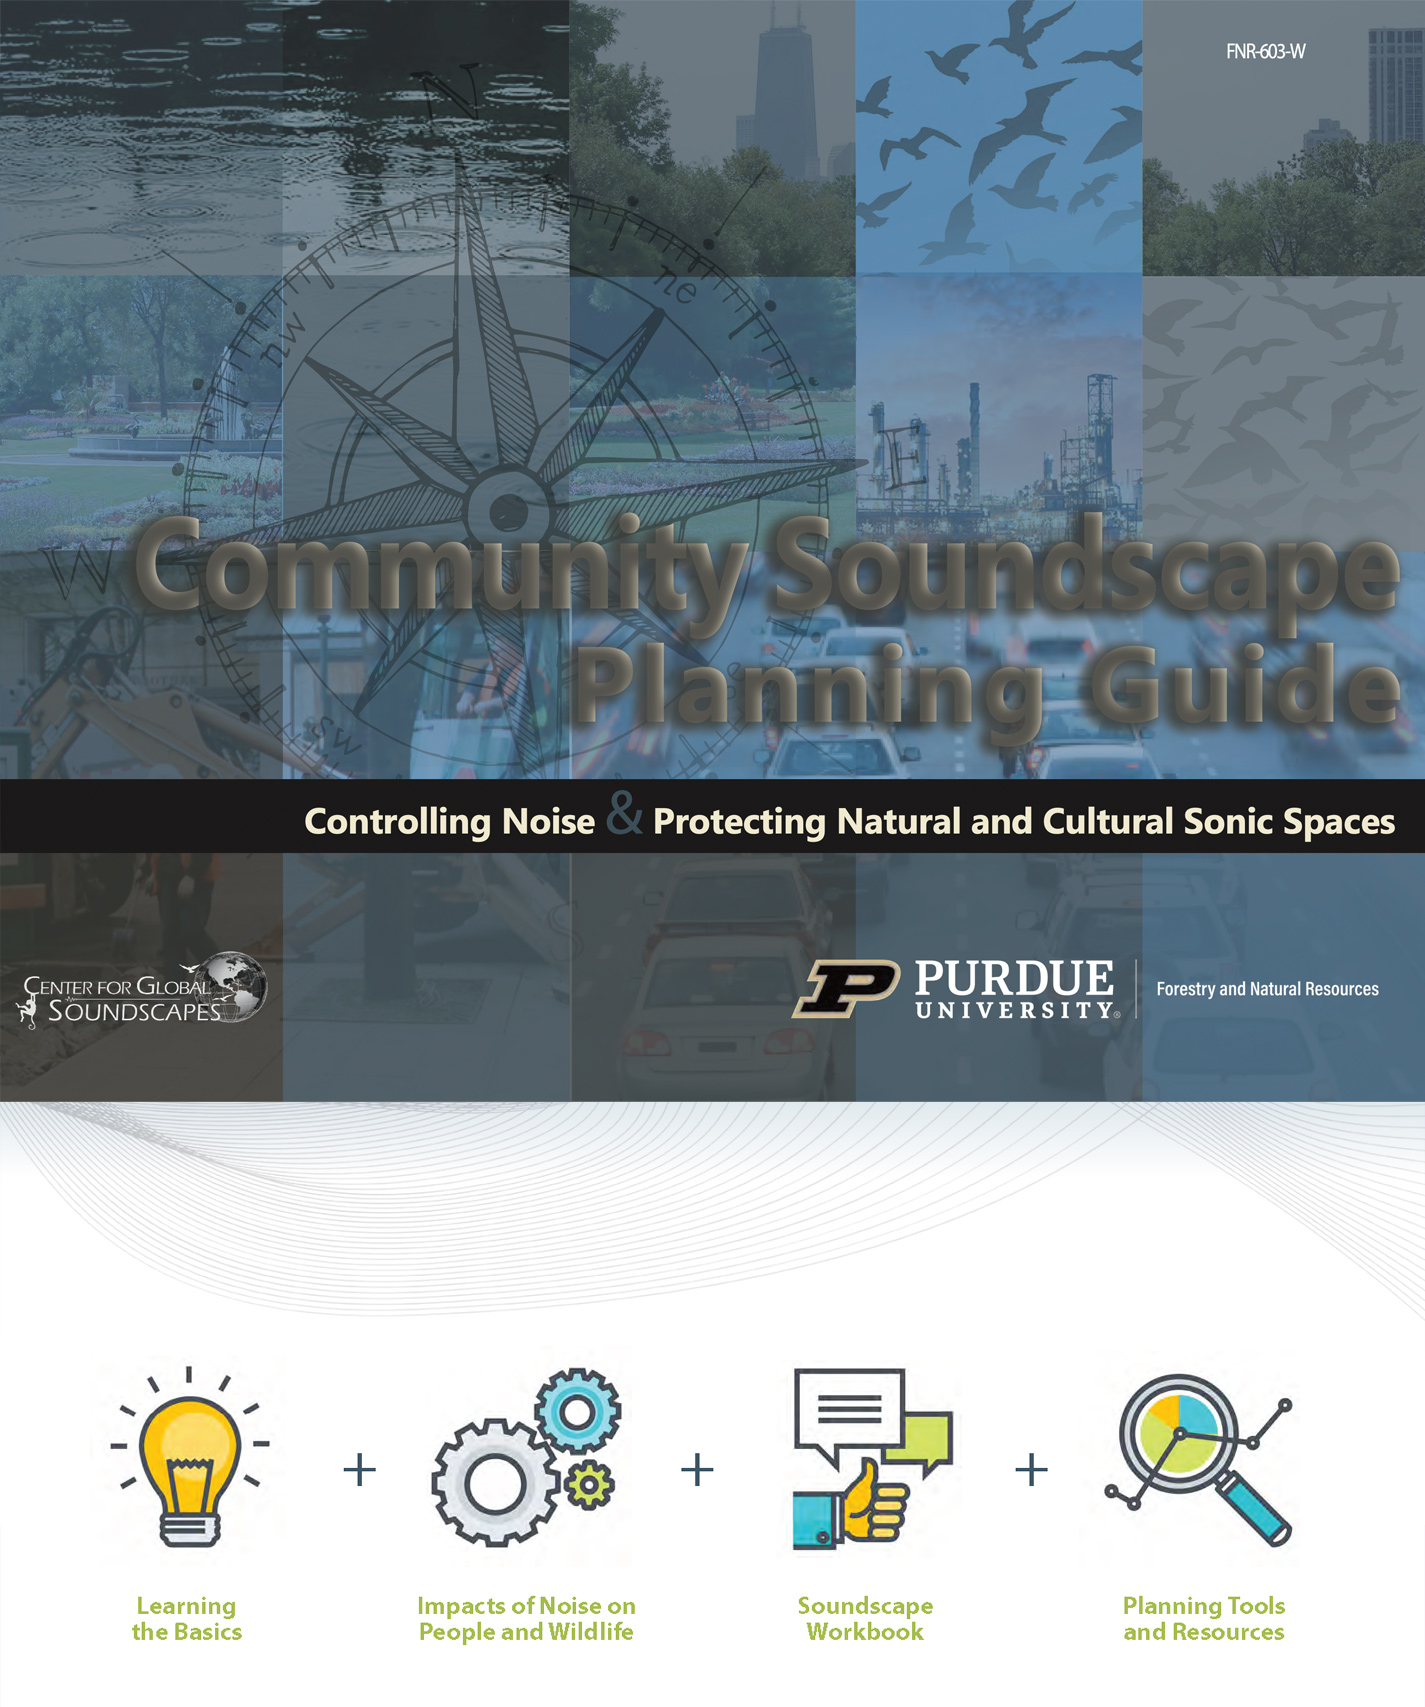 Community Soundscape Planning Guide: Controlling Noise & Protecting Natural and Cultural Sonic Spaces